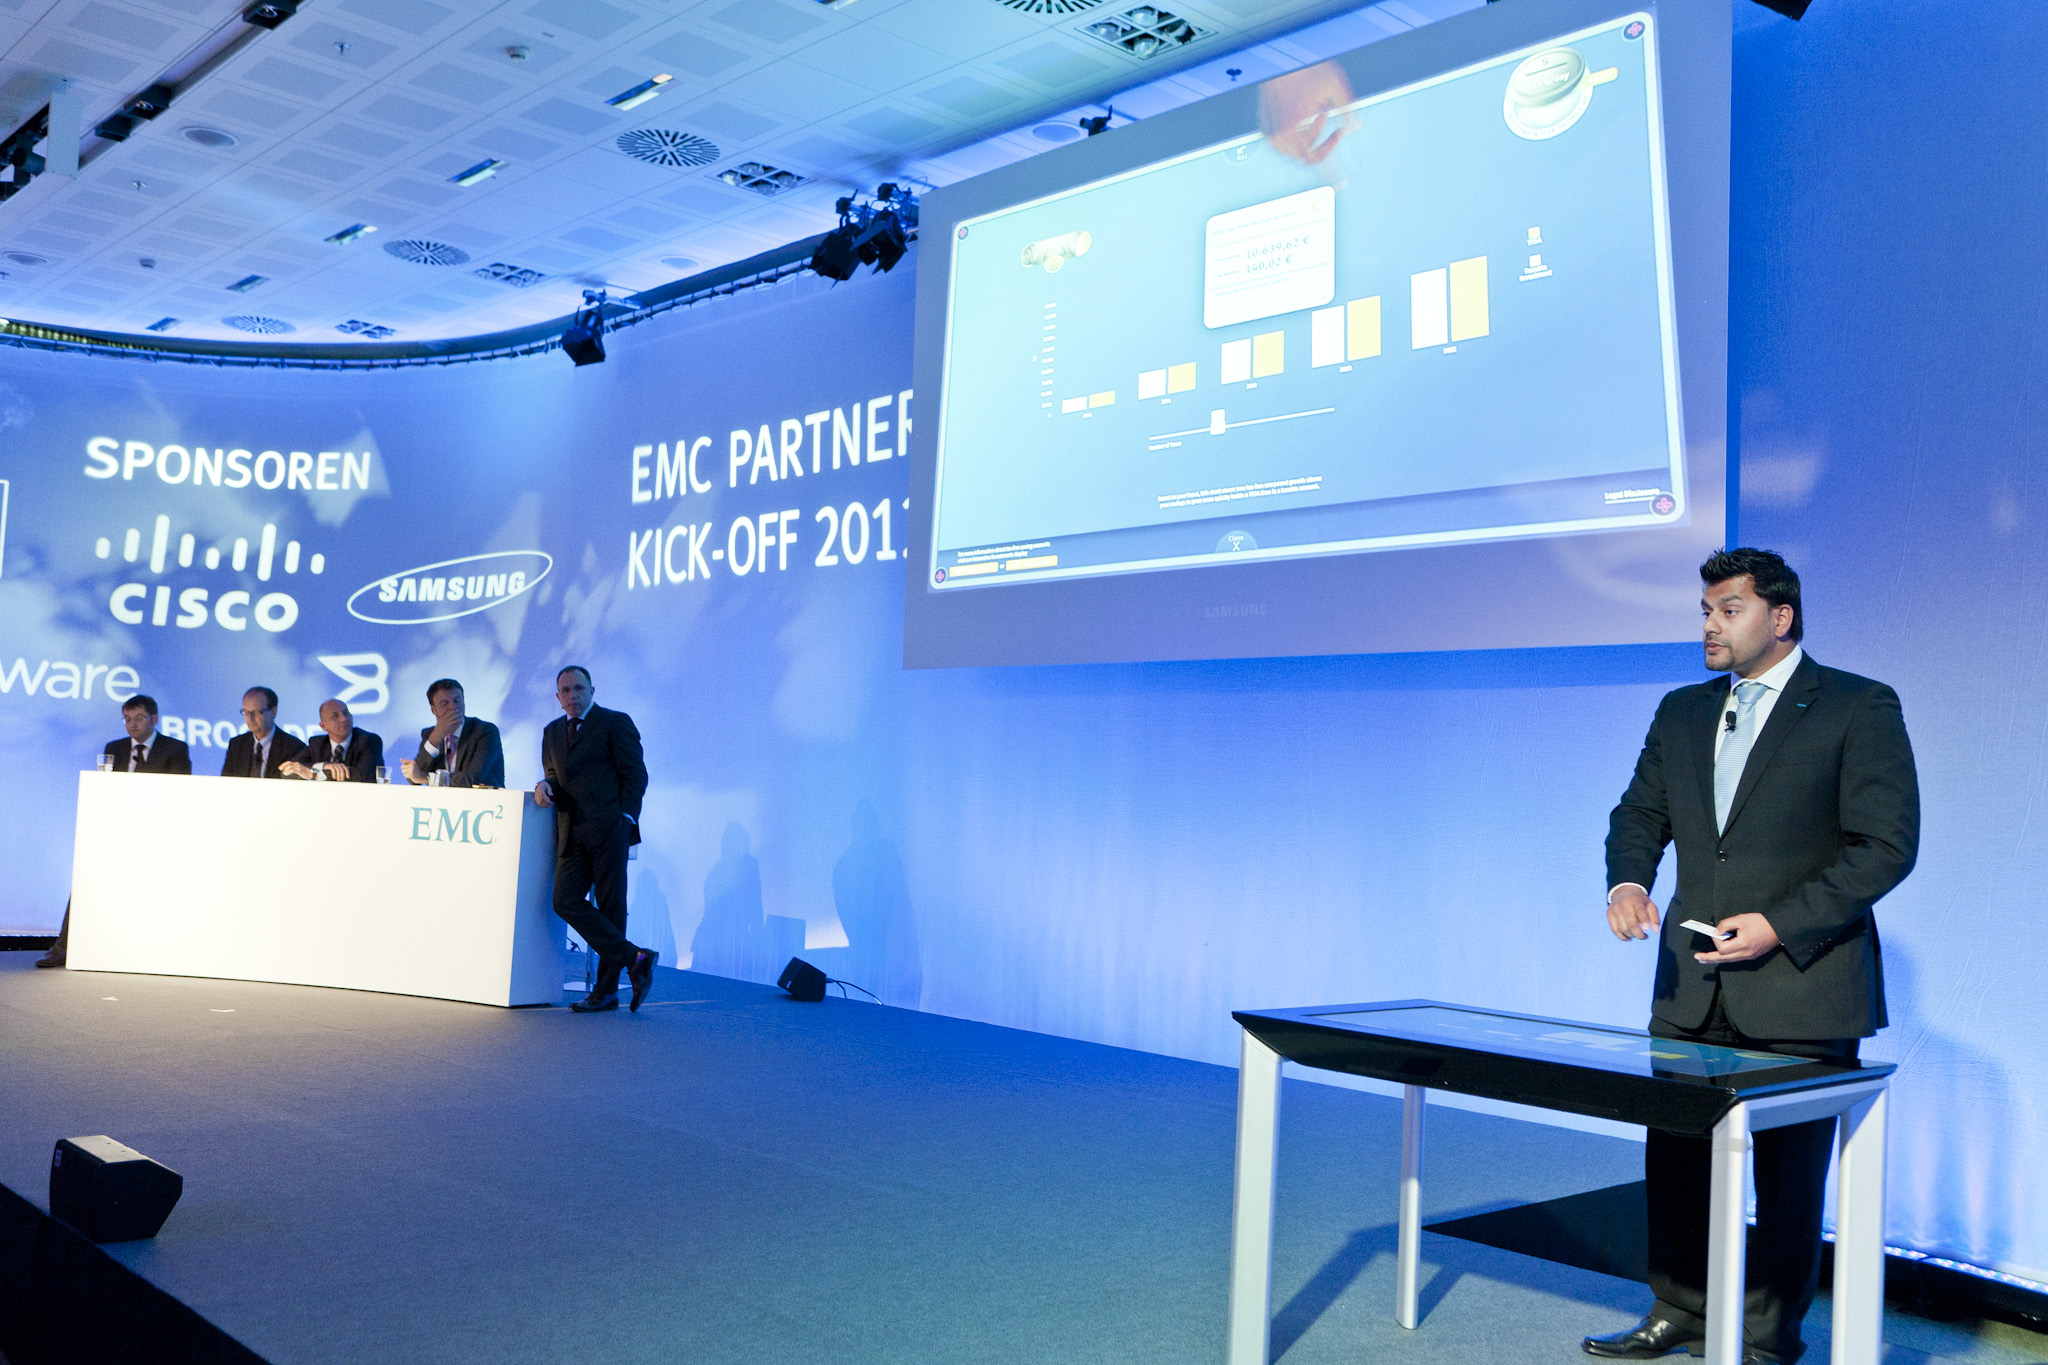 infotainment_emc kick off ii.jpg